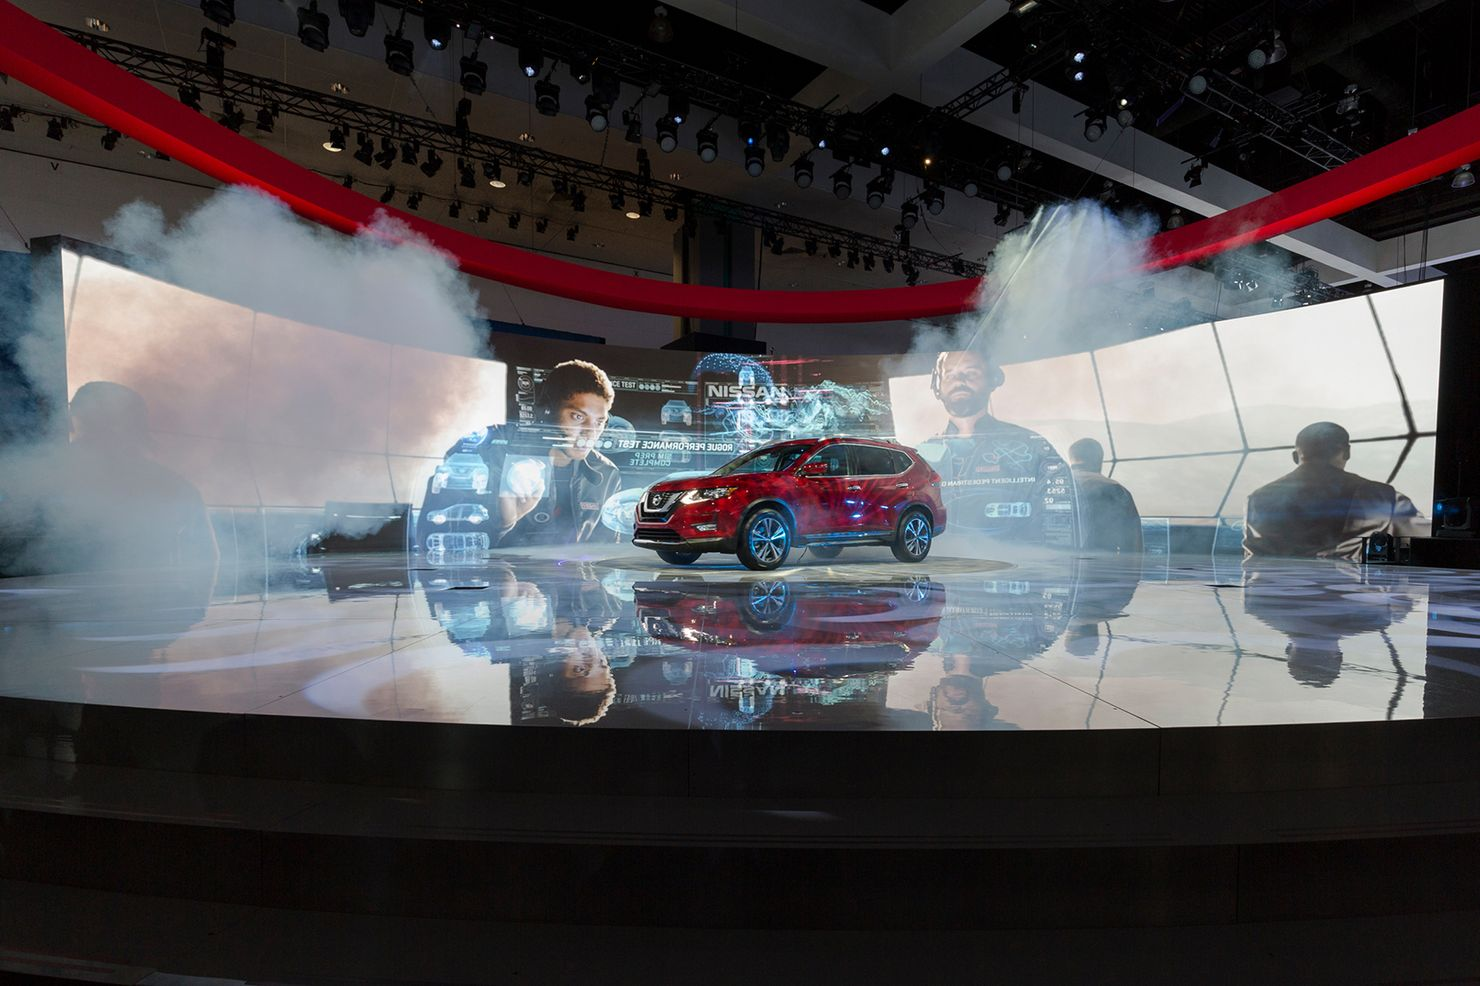 Image 1 for Nissan Rogue Launch at the Los Angeles Auto Show